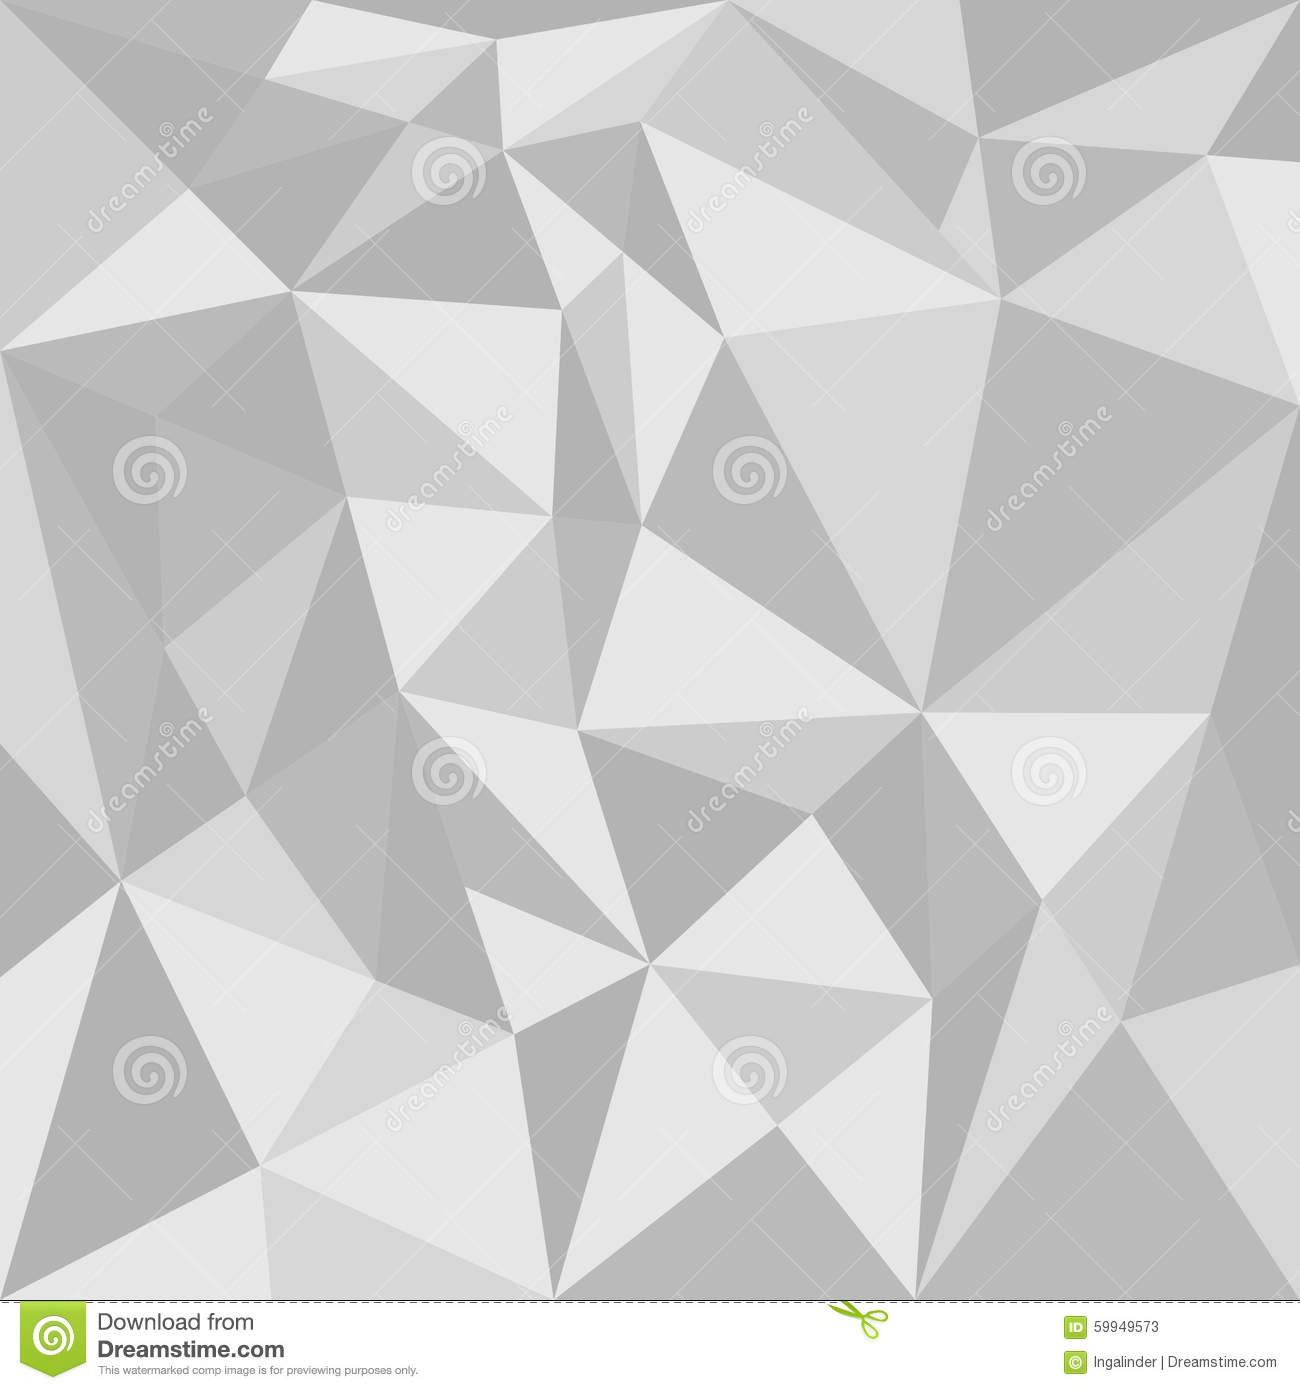 Grey Triangle Vector Background Stock Vector - Image: 59949573